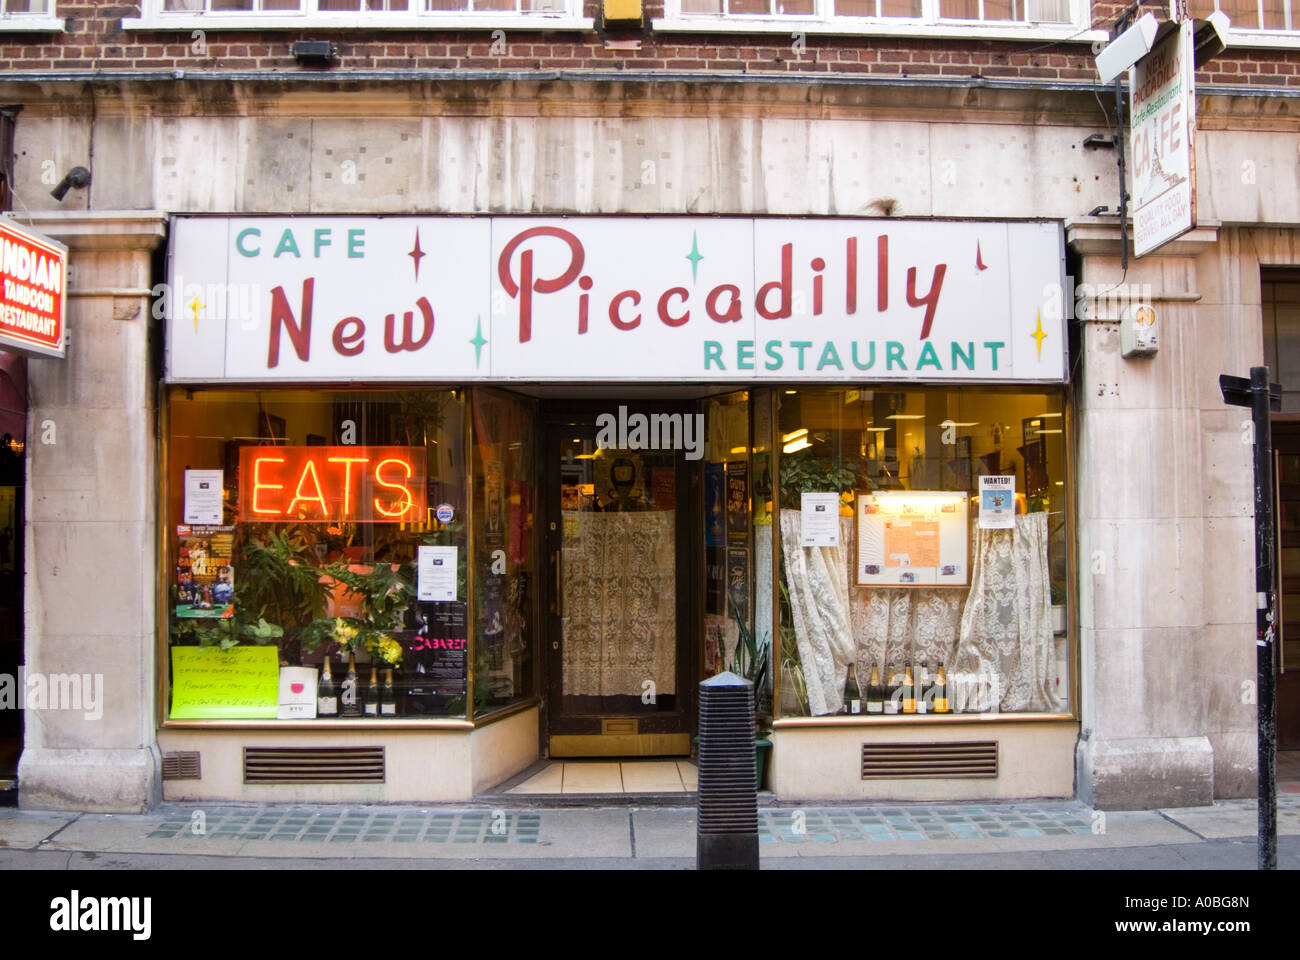 The New Piccadilly Cafe unchanged since the 1950s, London, UK - Stock Image